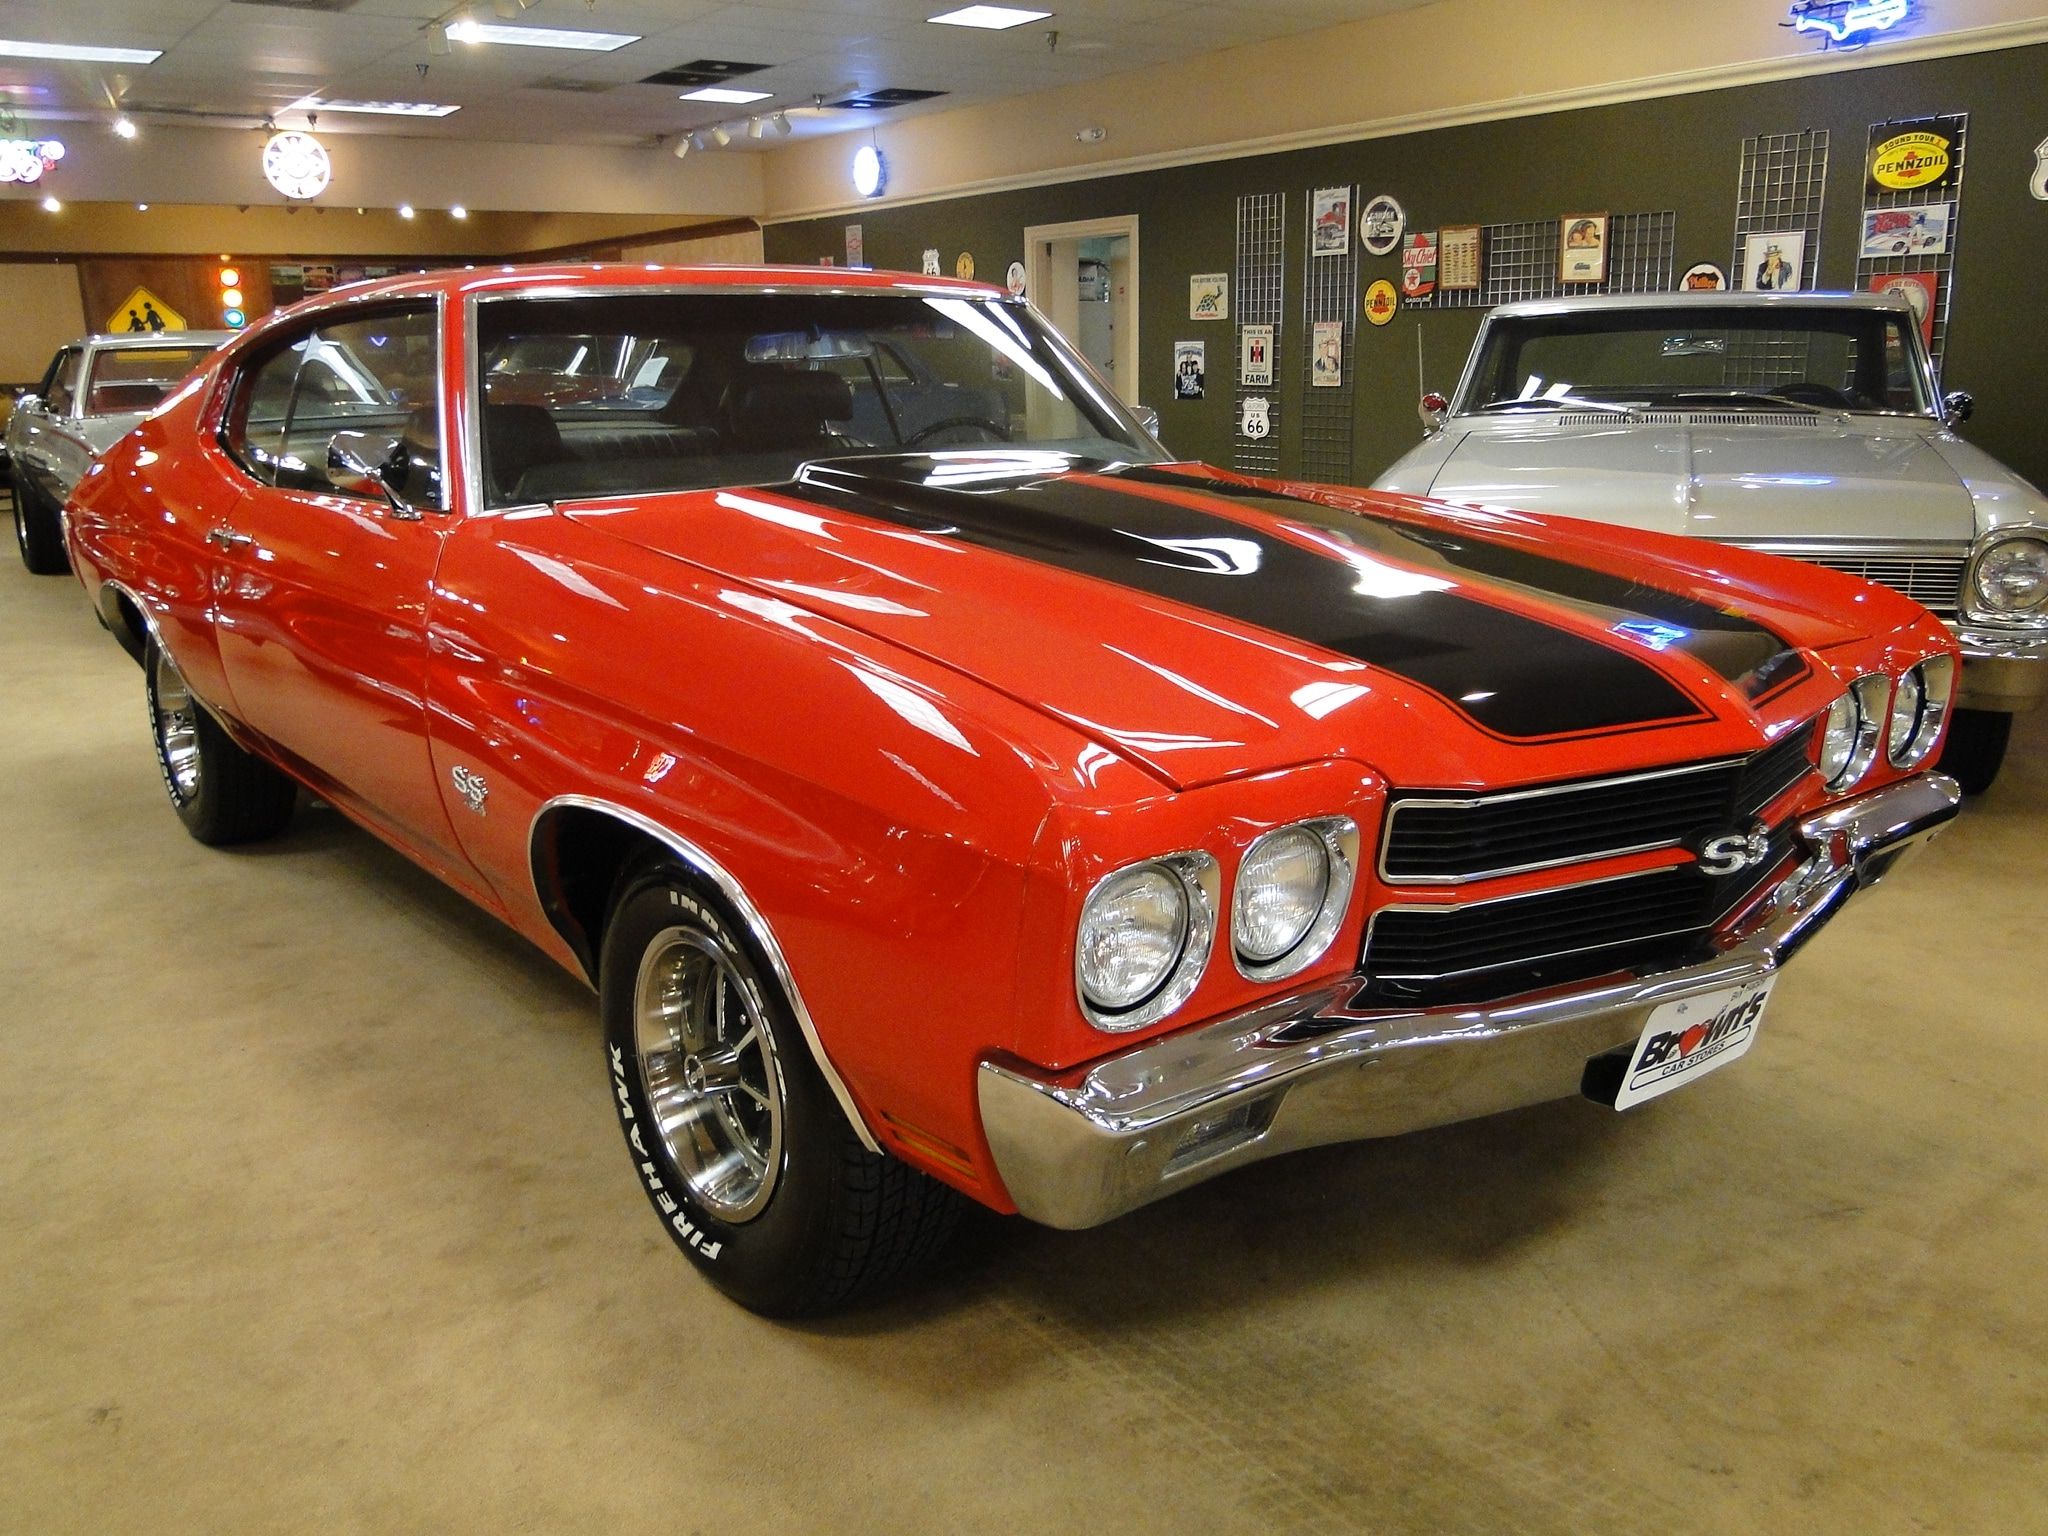 1970 Chevrolet Chevelle SS 454--Sold to Alabama! Coupe Glen Burnie MD